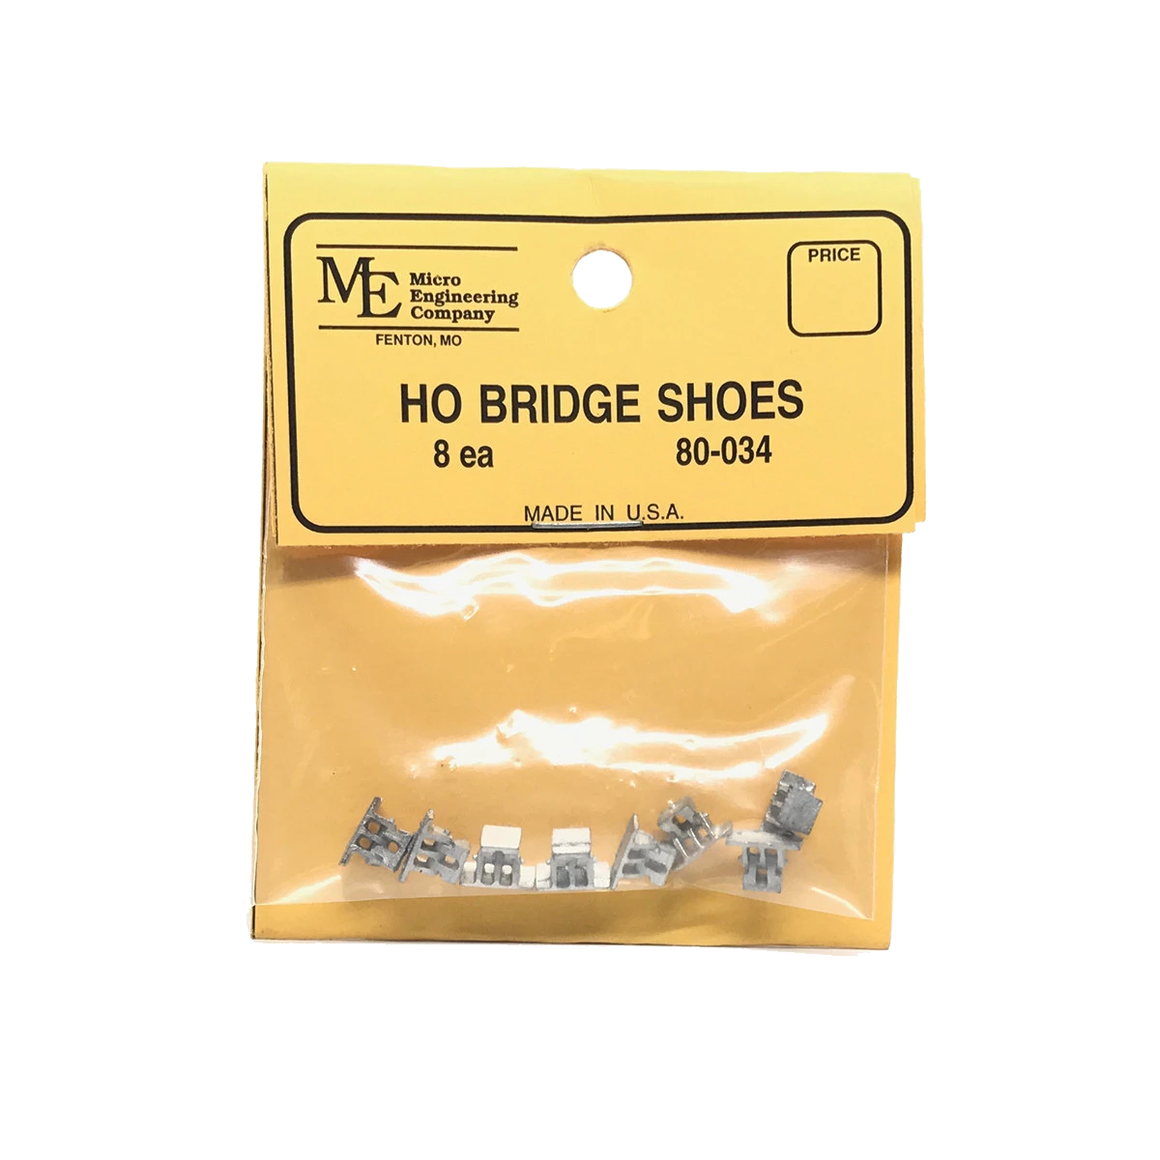 HO Scale: Bridge Shoes - Qty 8